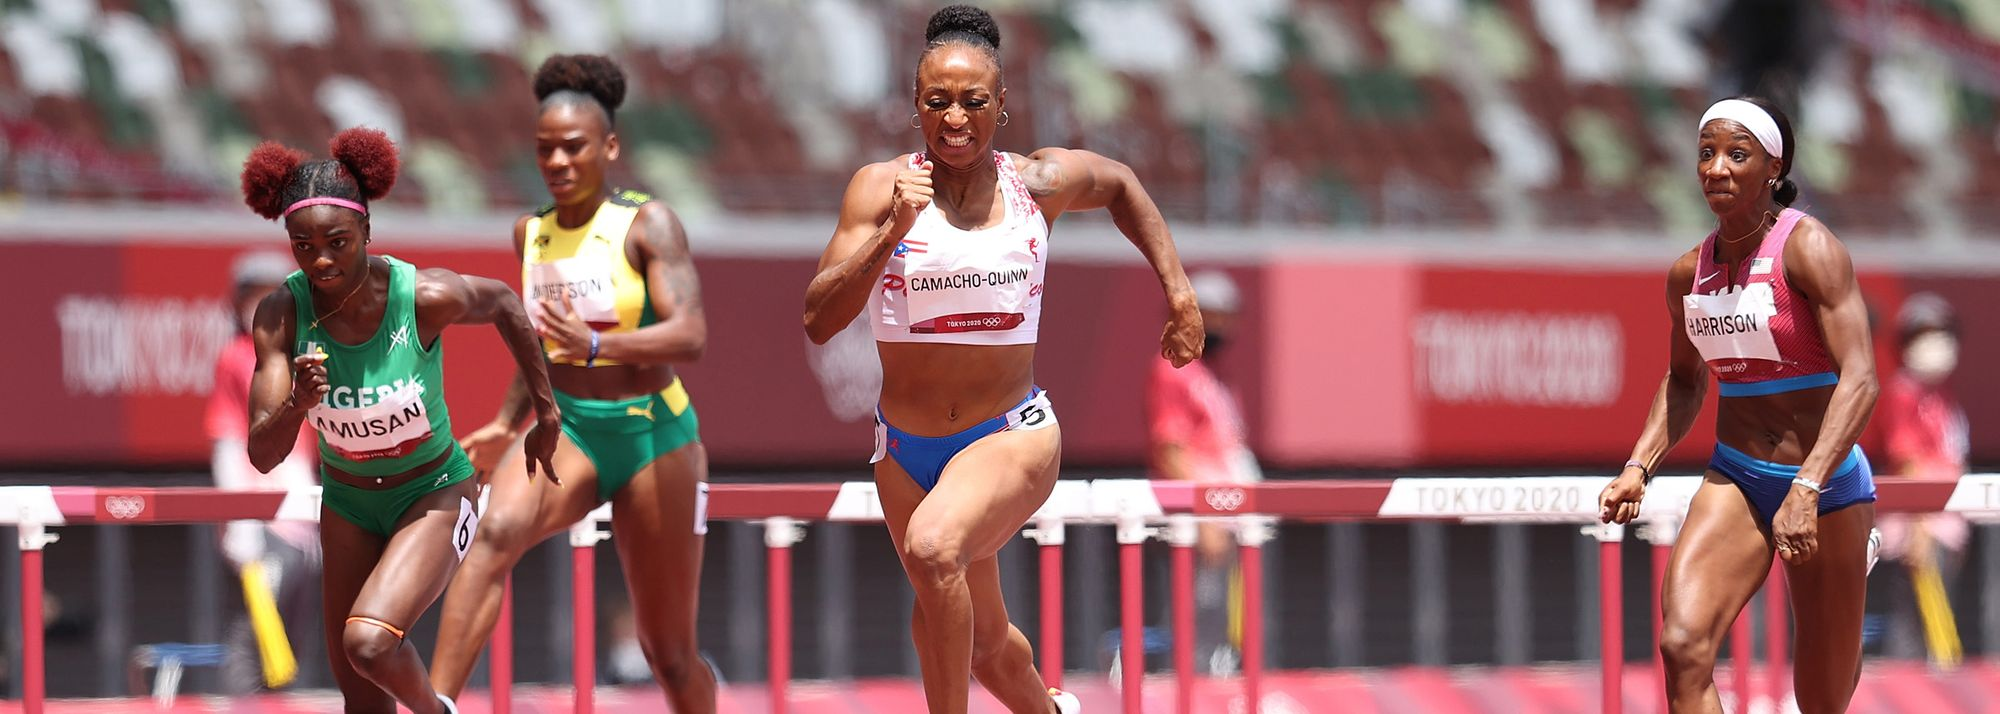 Jasmine Camacho-Quinn's experience in Rio became a distant memory as the 24-year-old cruised to victory in the 100m hurdles in Tokyo